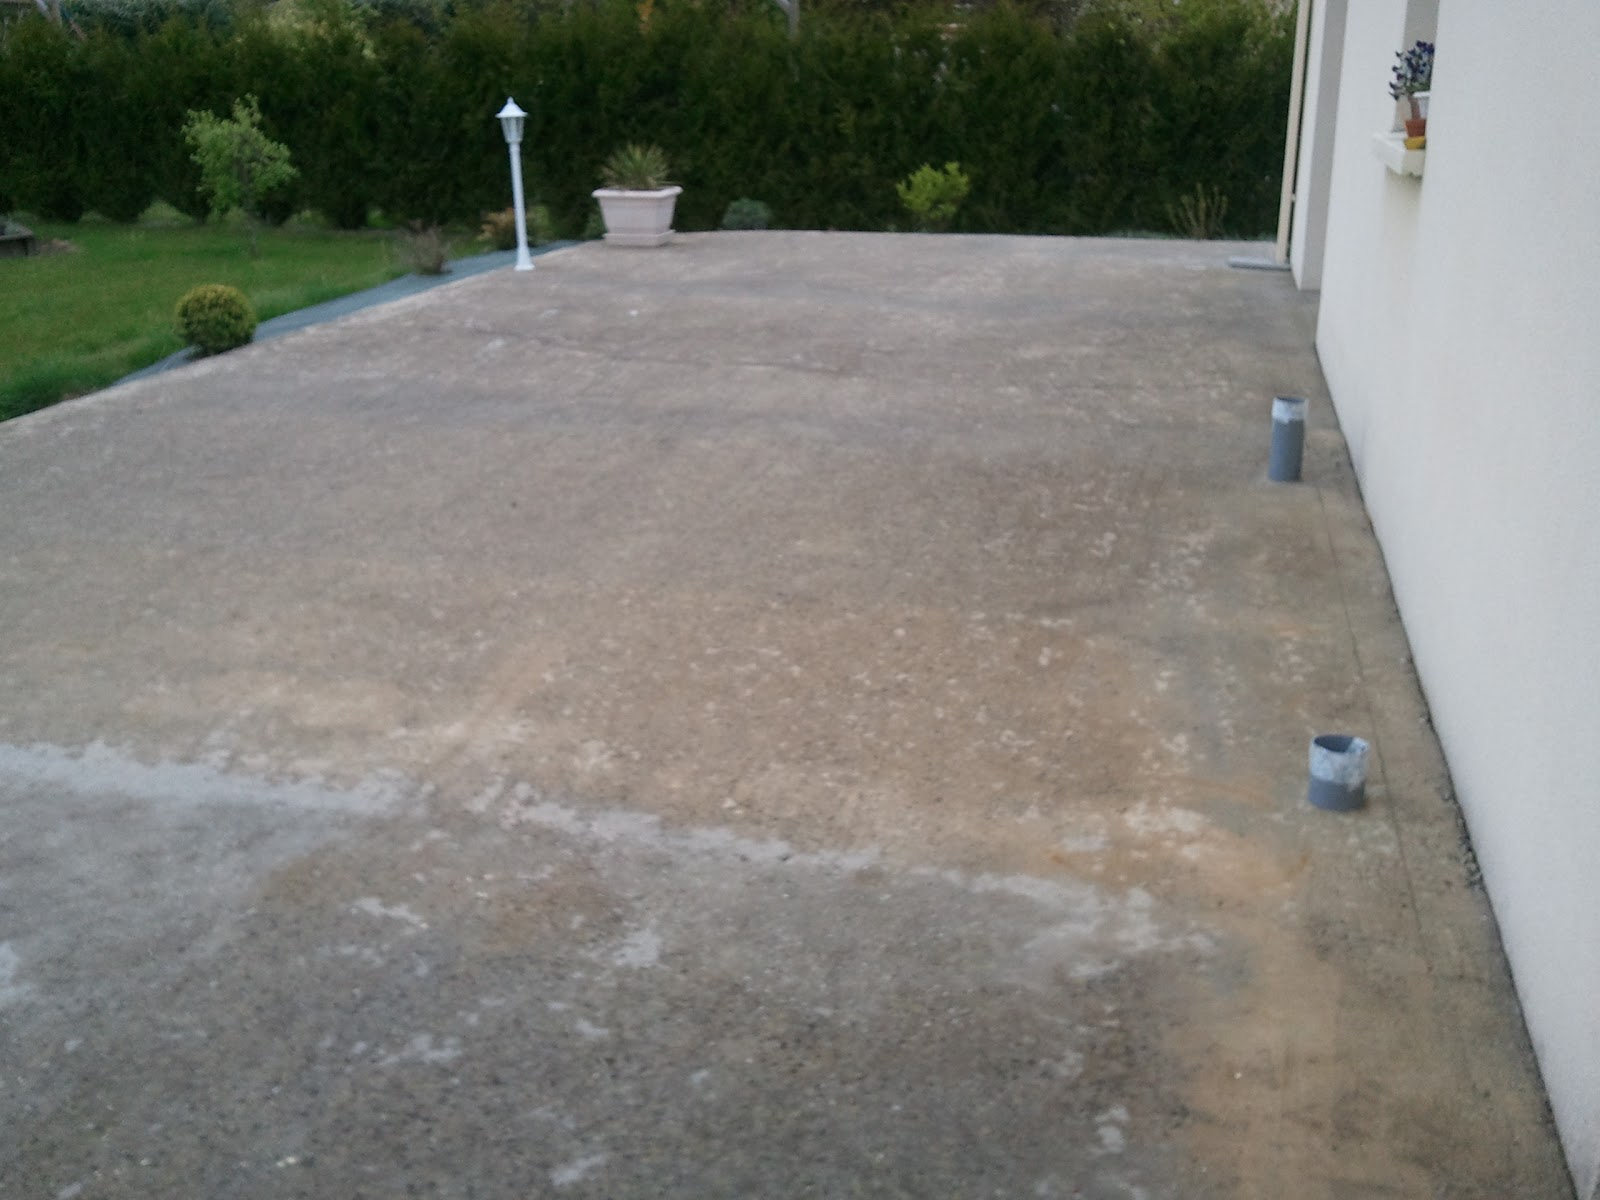 Jrenovabita terrasse pin for Pose dalle exterieur